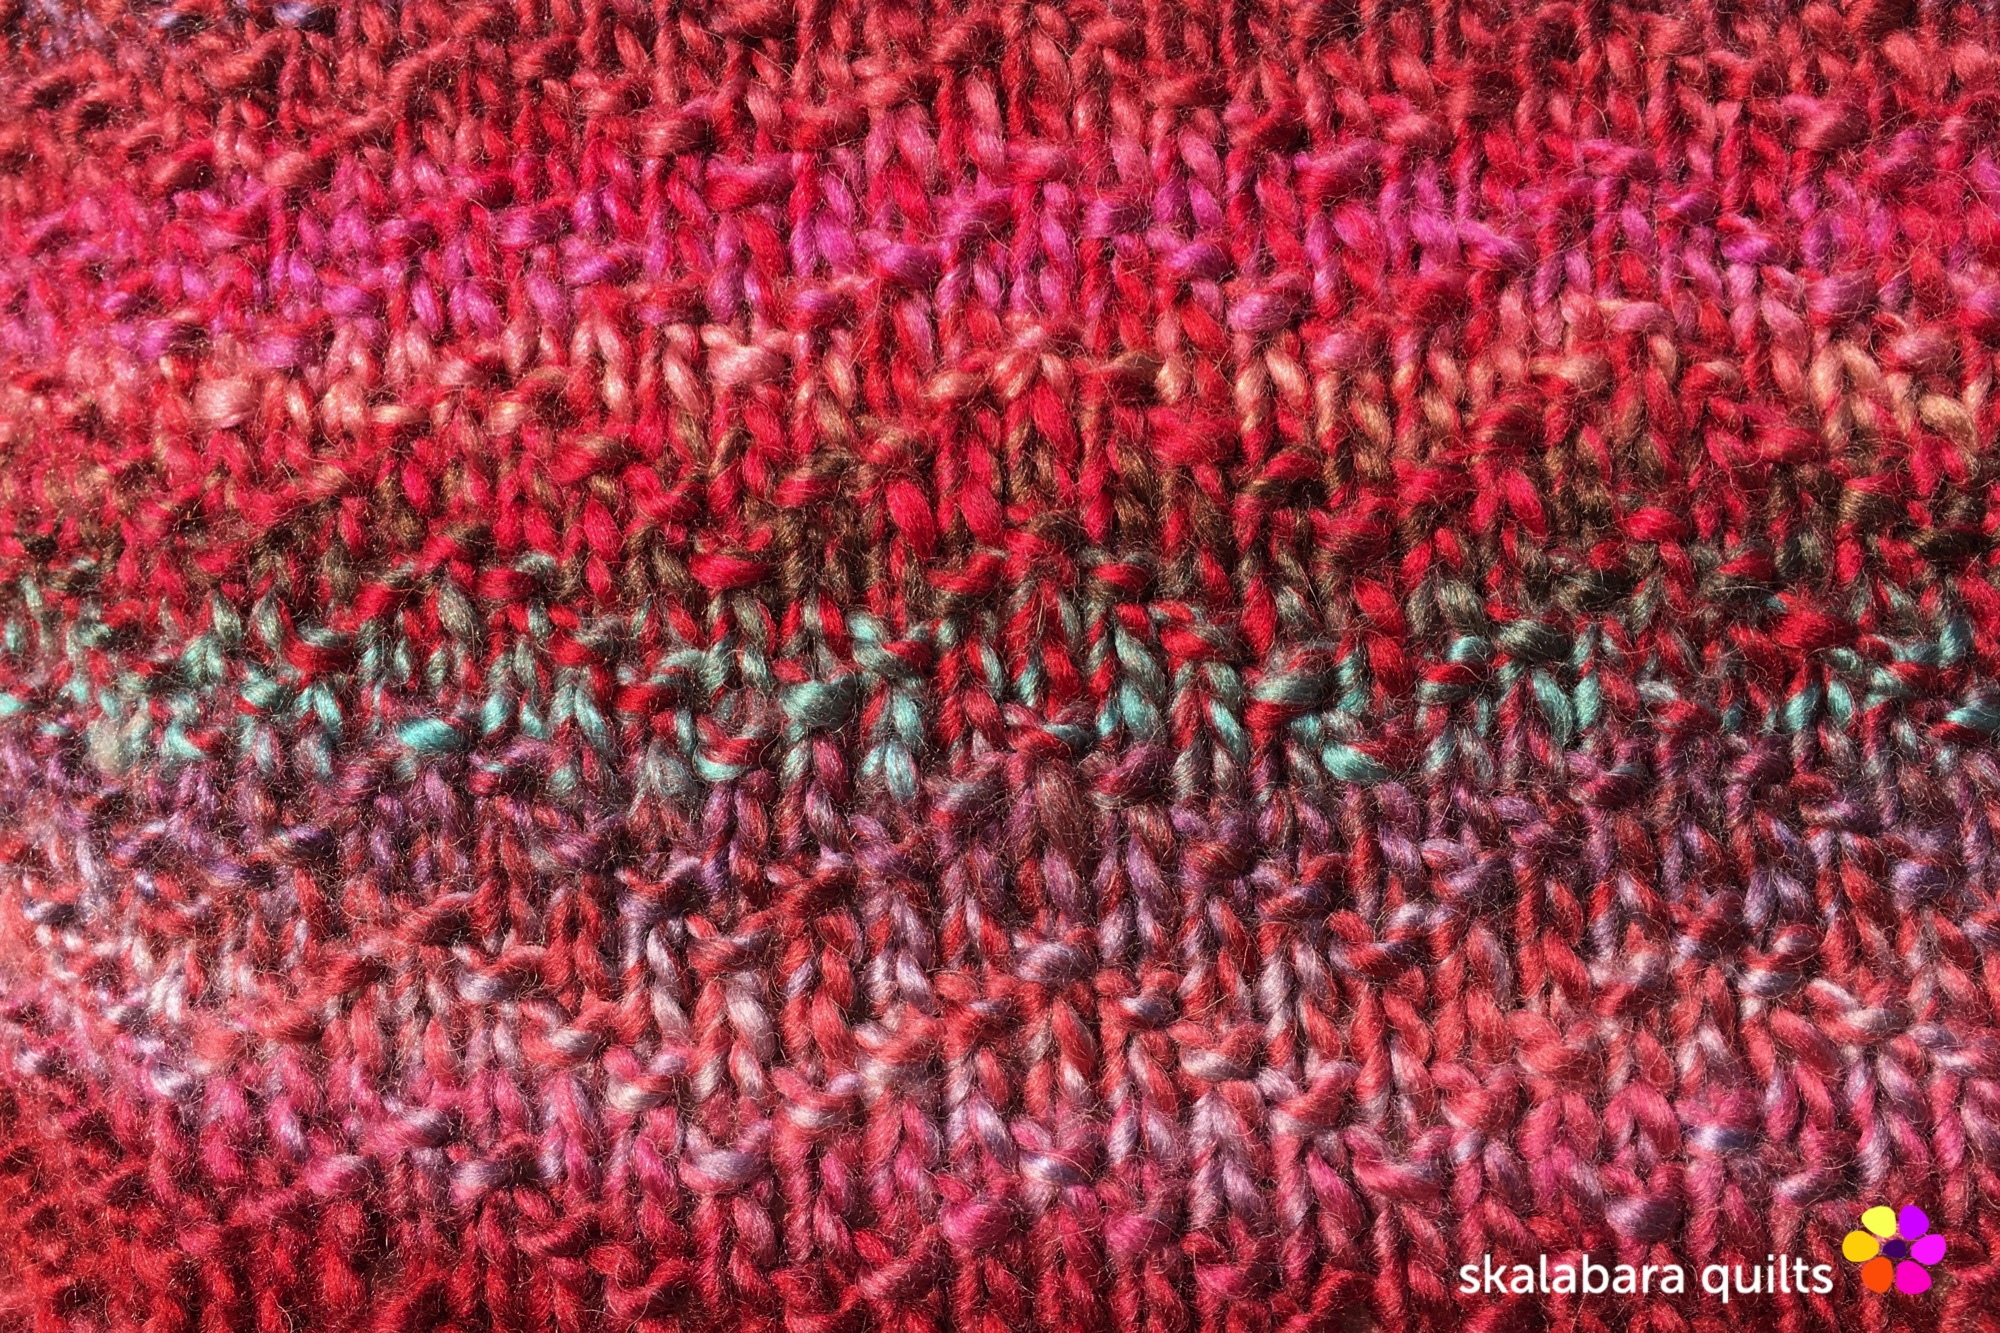 knitted chevron seed cushion cover detail - skalabara quilts